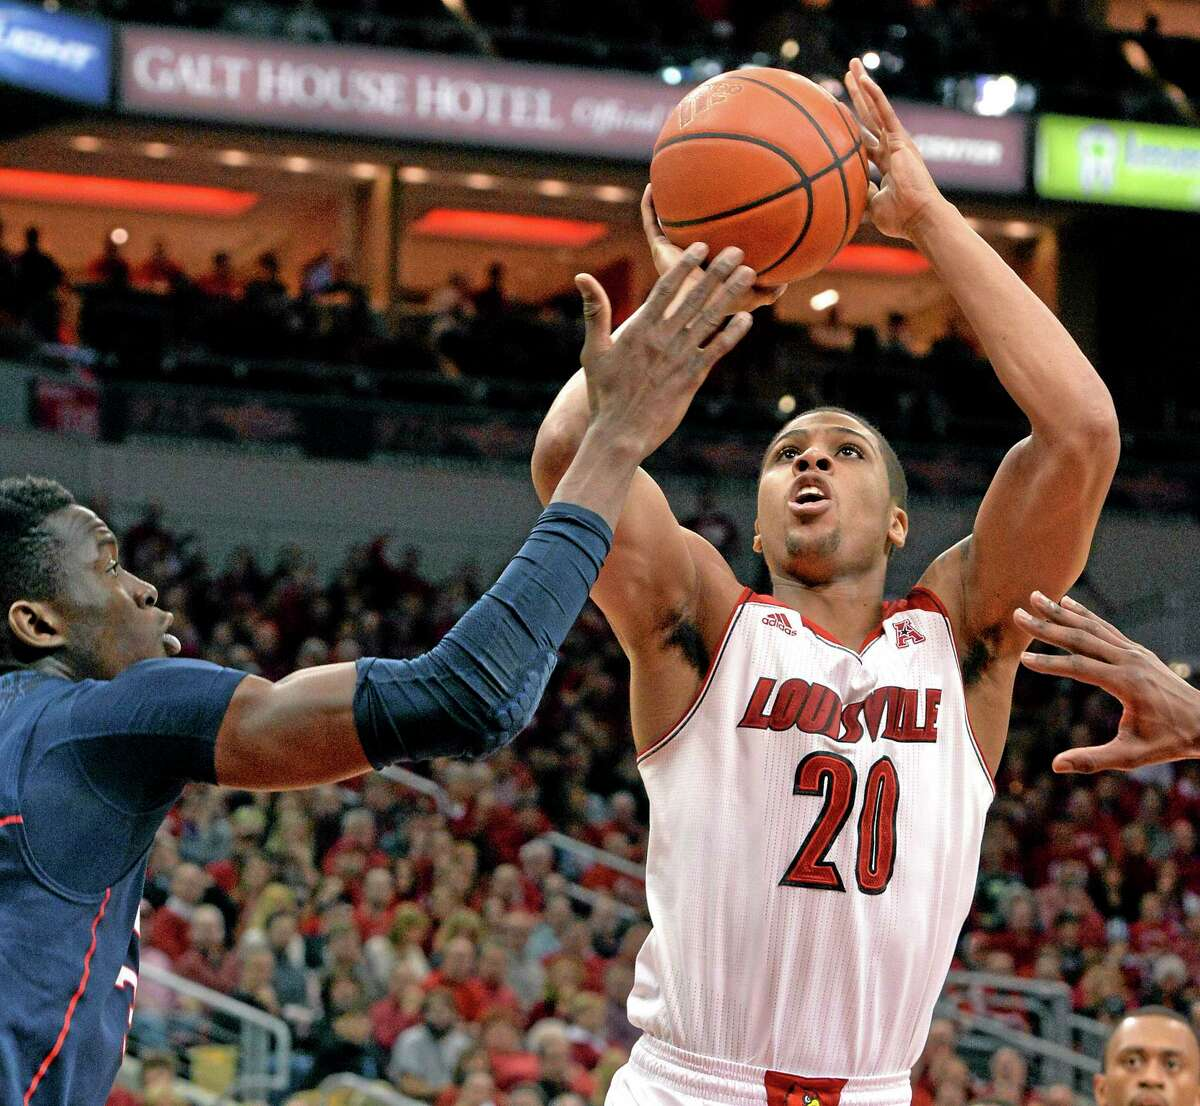 Louisville's Wayne Blackshear shoots as UConn's Amida Brimah defends during the second half of the No. 11 Cardinals' 81-48 win over the 19th-ranked Huskies on Saturday in Louisville, Ky.